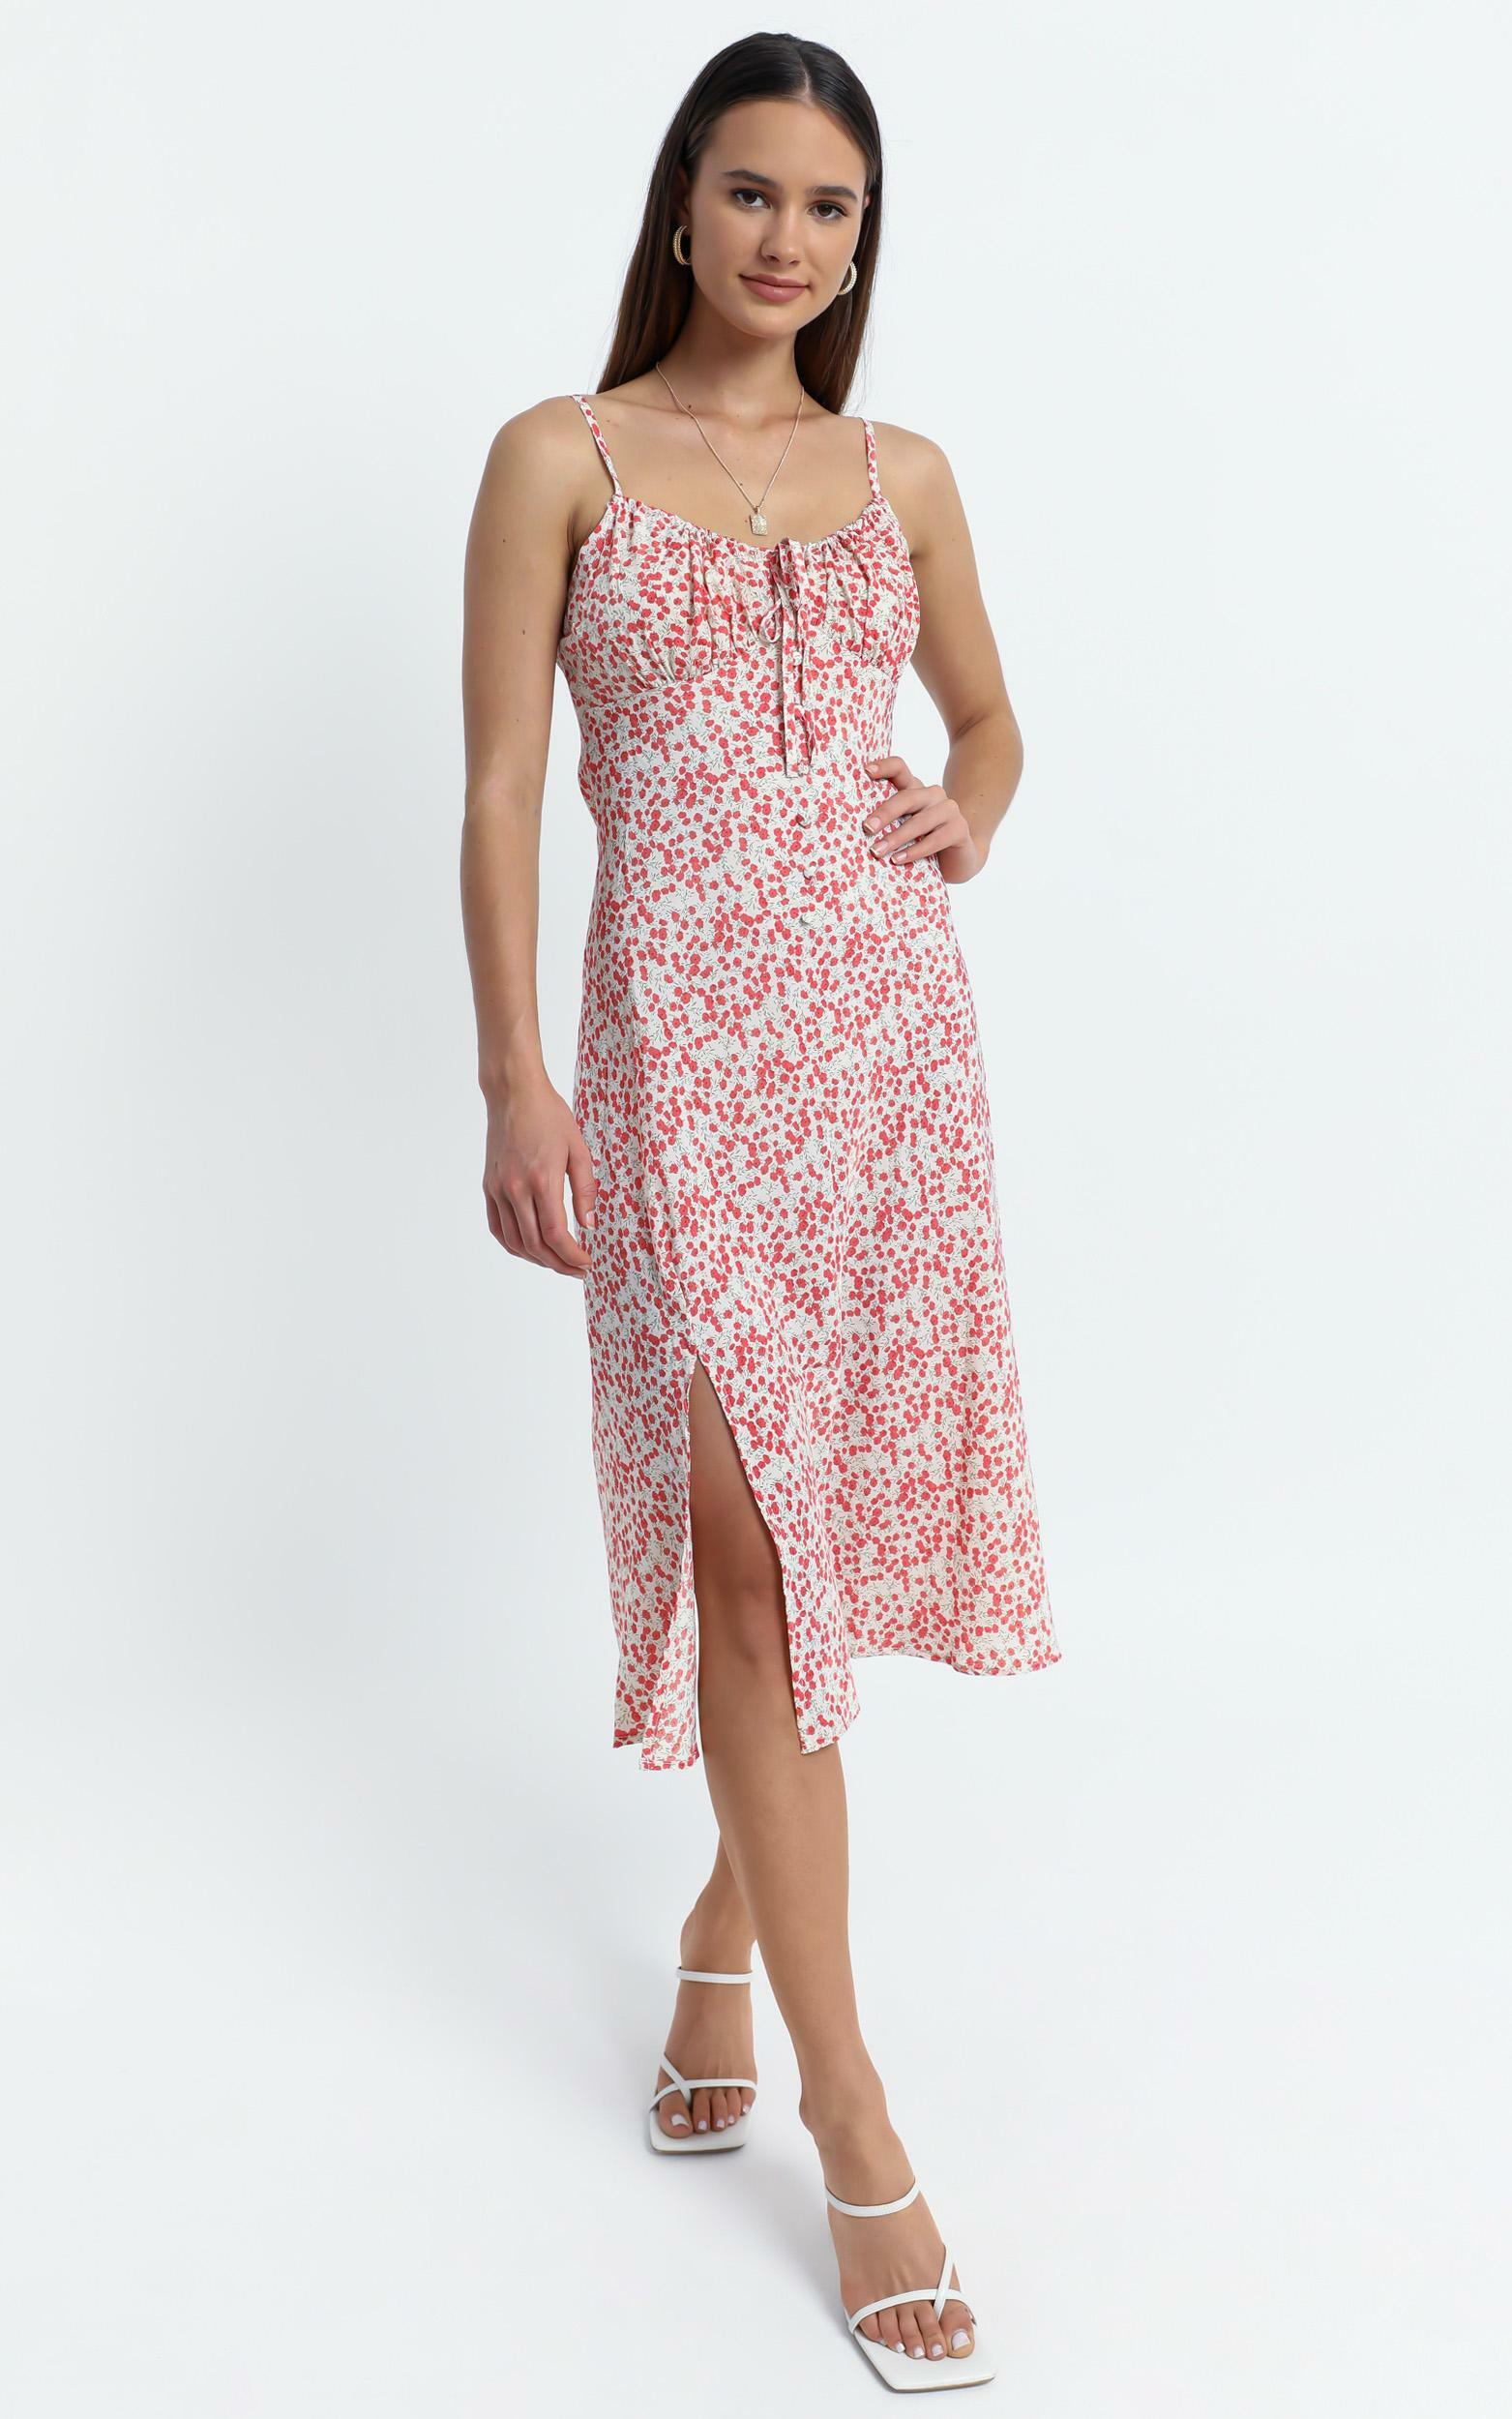 California Dress in Red Floral - 10 (M), Red, hi-res image number null